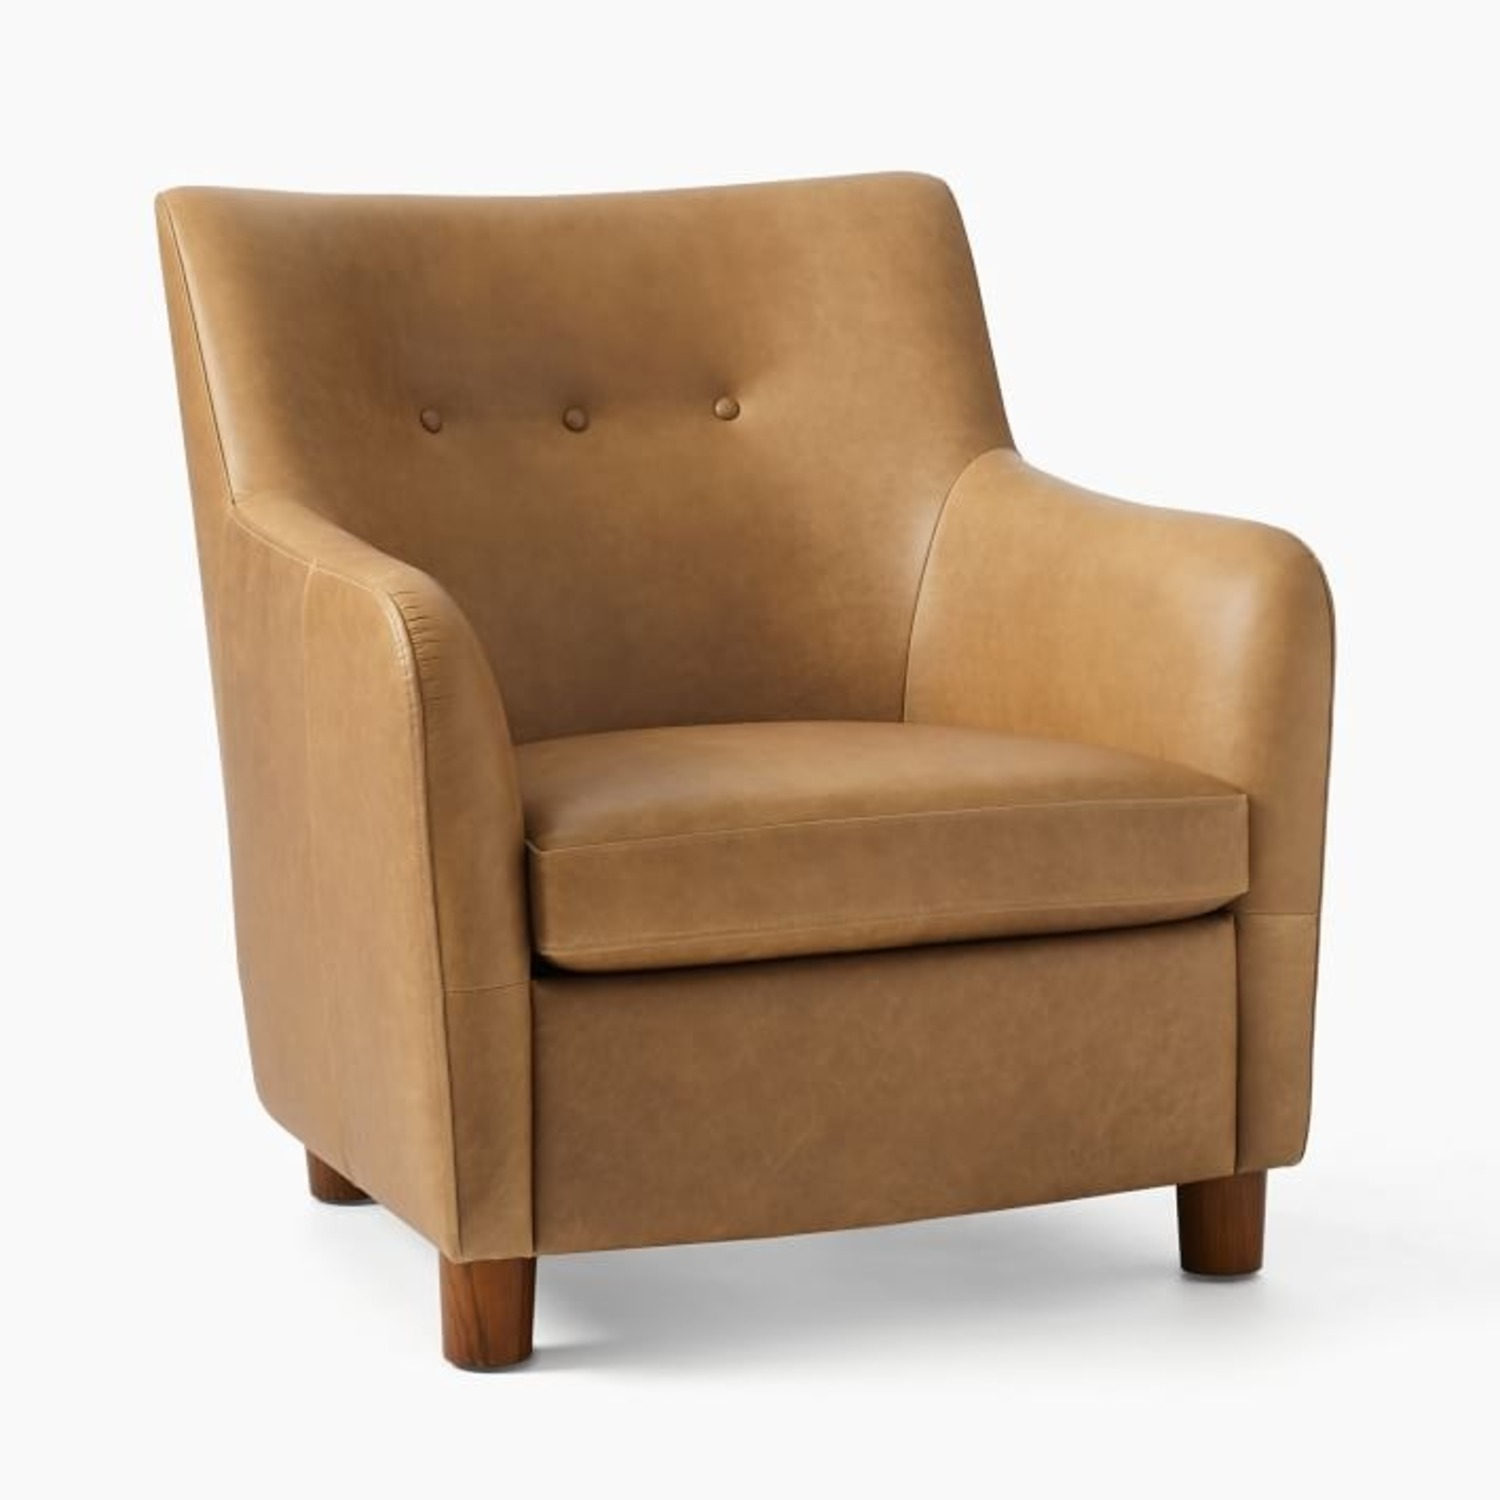 West Elm Teddy Chair + Matching Ottoman - image-1